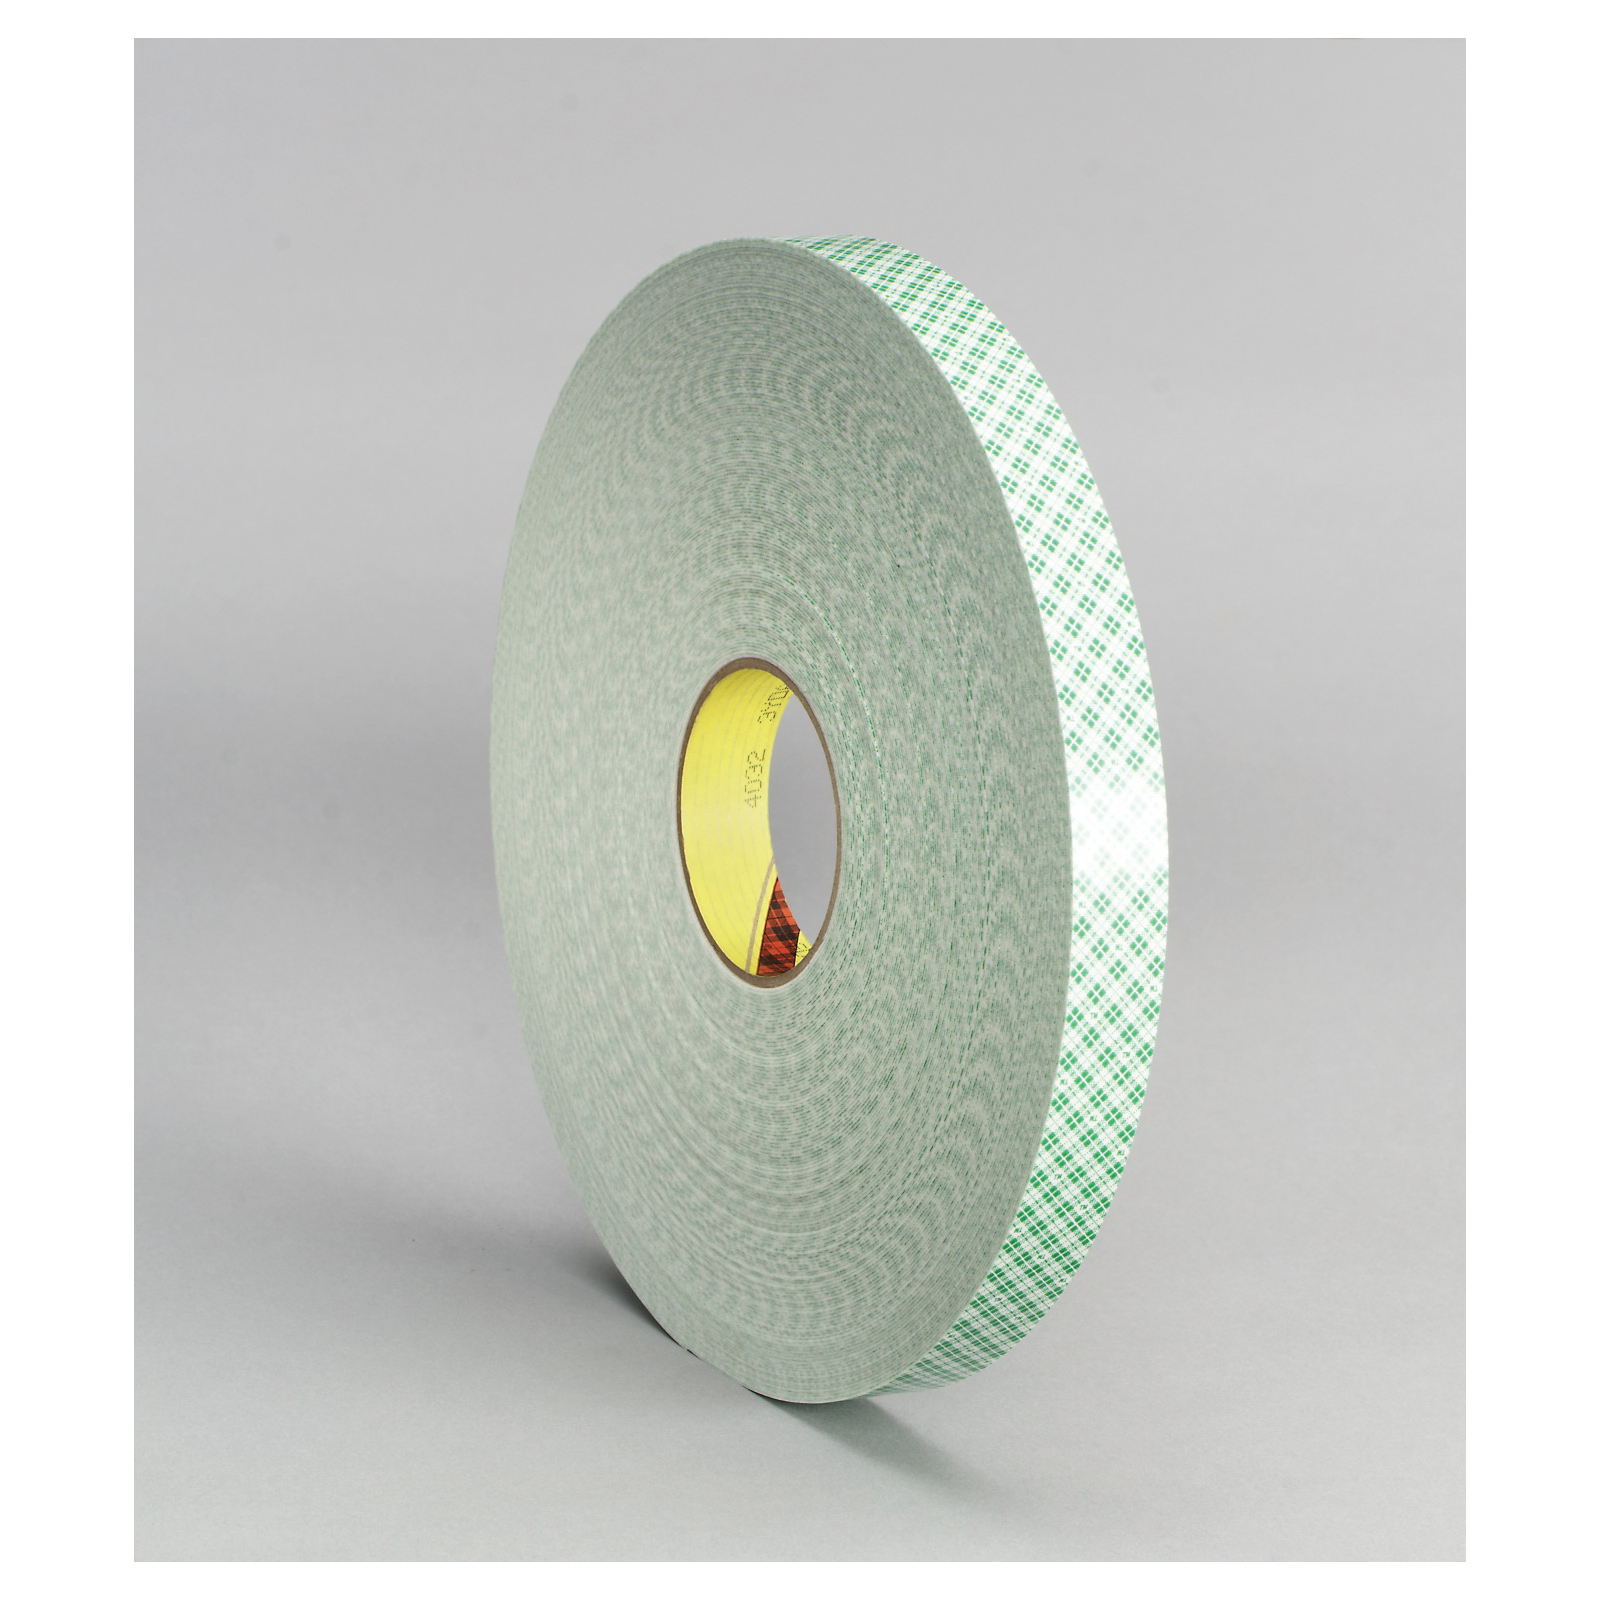 3M™ 021200-06458 Double Coated Tape, 72 yd L x 1 in W, 31 mil THK, Acrylic Adhesive, Urethane Foam Backing, Off-White